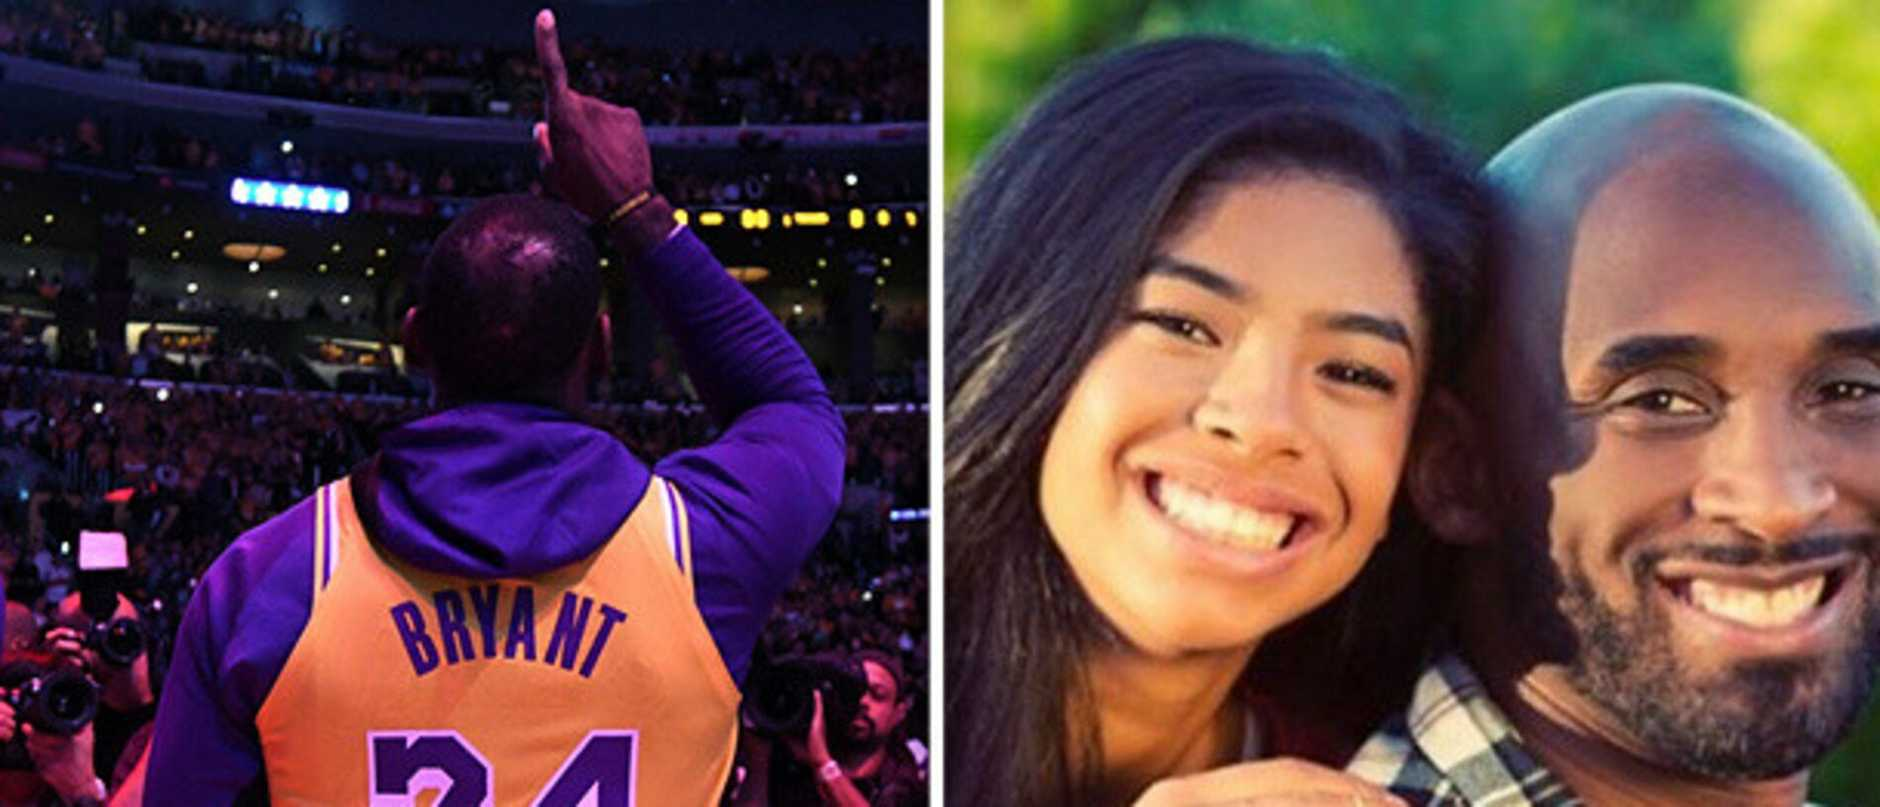 The Lakers' franchise and fans have paid an emotional tribute to Koby Bryant and his daughter Gianna.